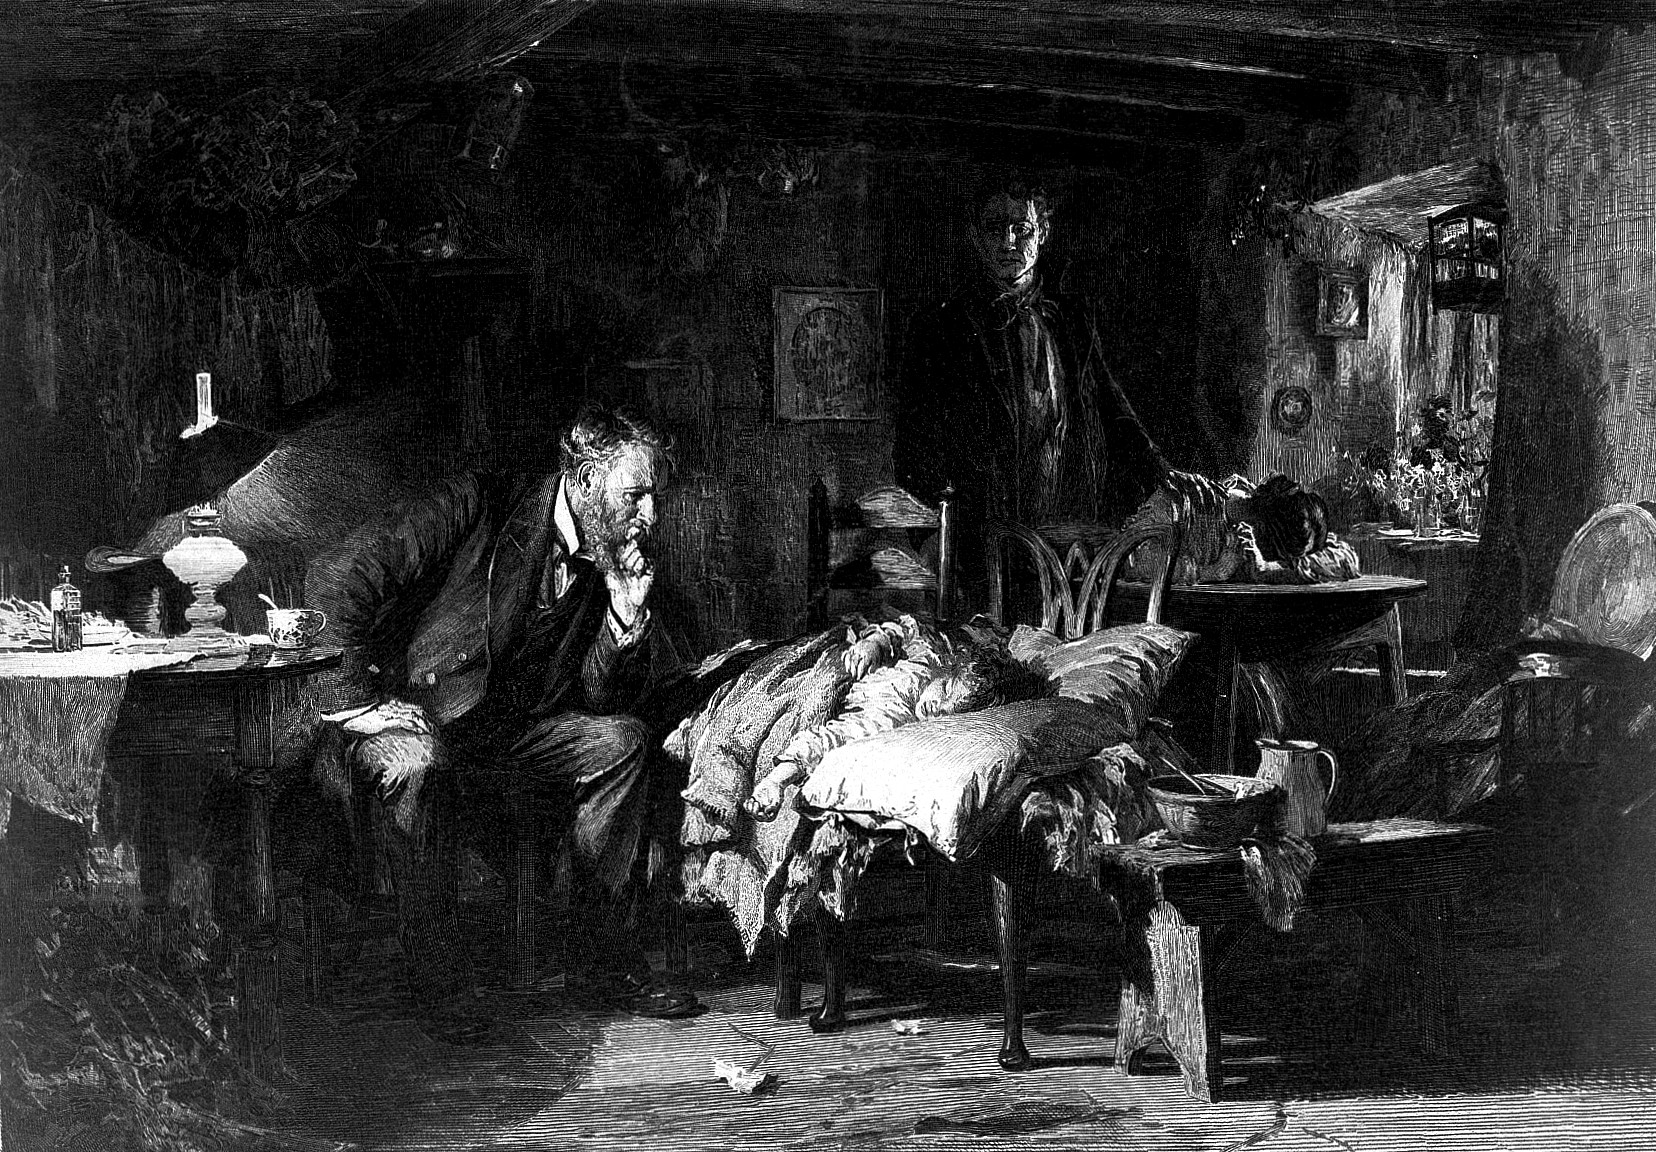 Black and white drawing of men in a very old, messy room, looking lost in thought as they look over a child lying on a bed